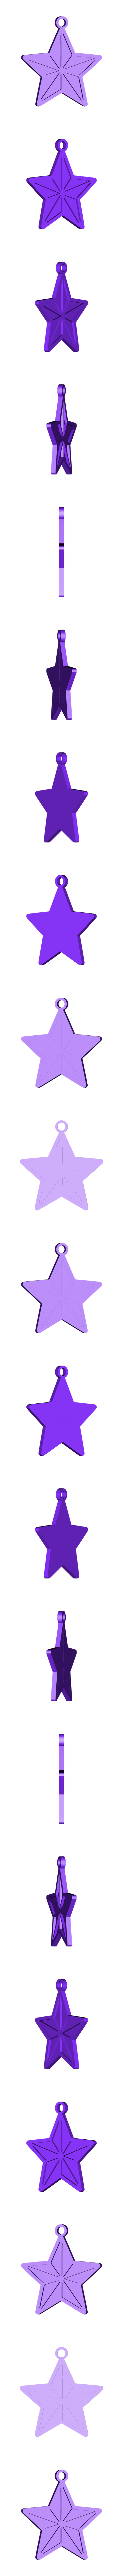 star.stl Download free STL file 15 christmas decorations • Object to 3D print, Giara